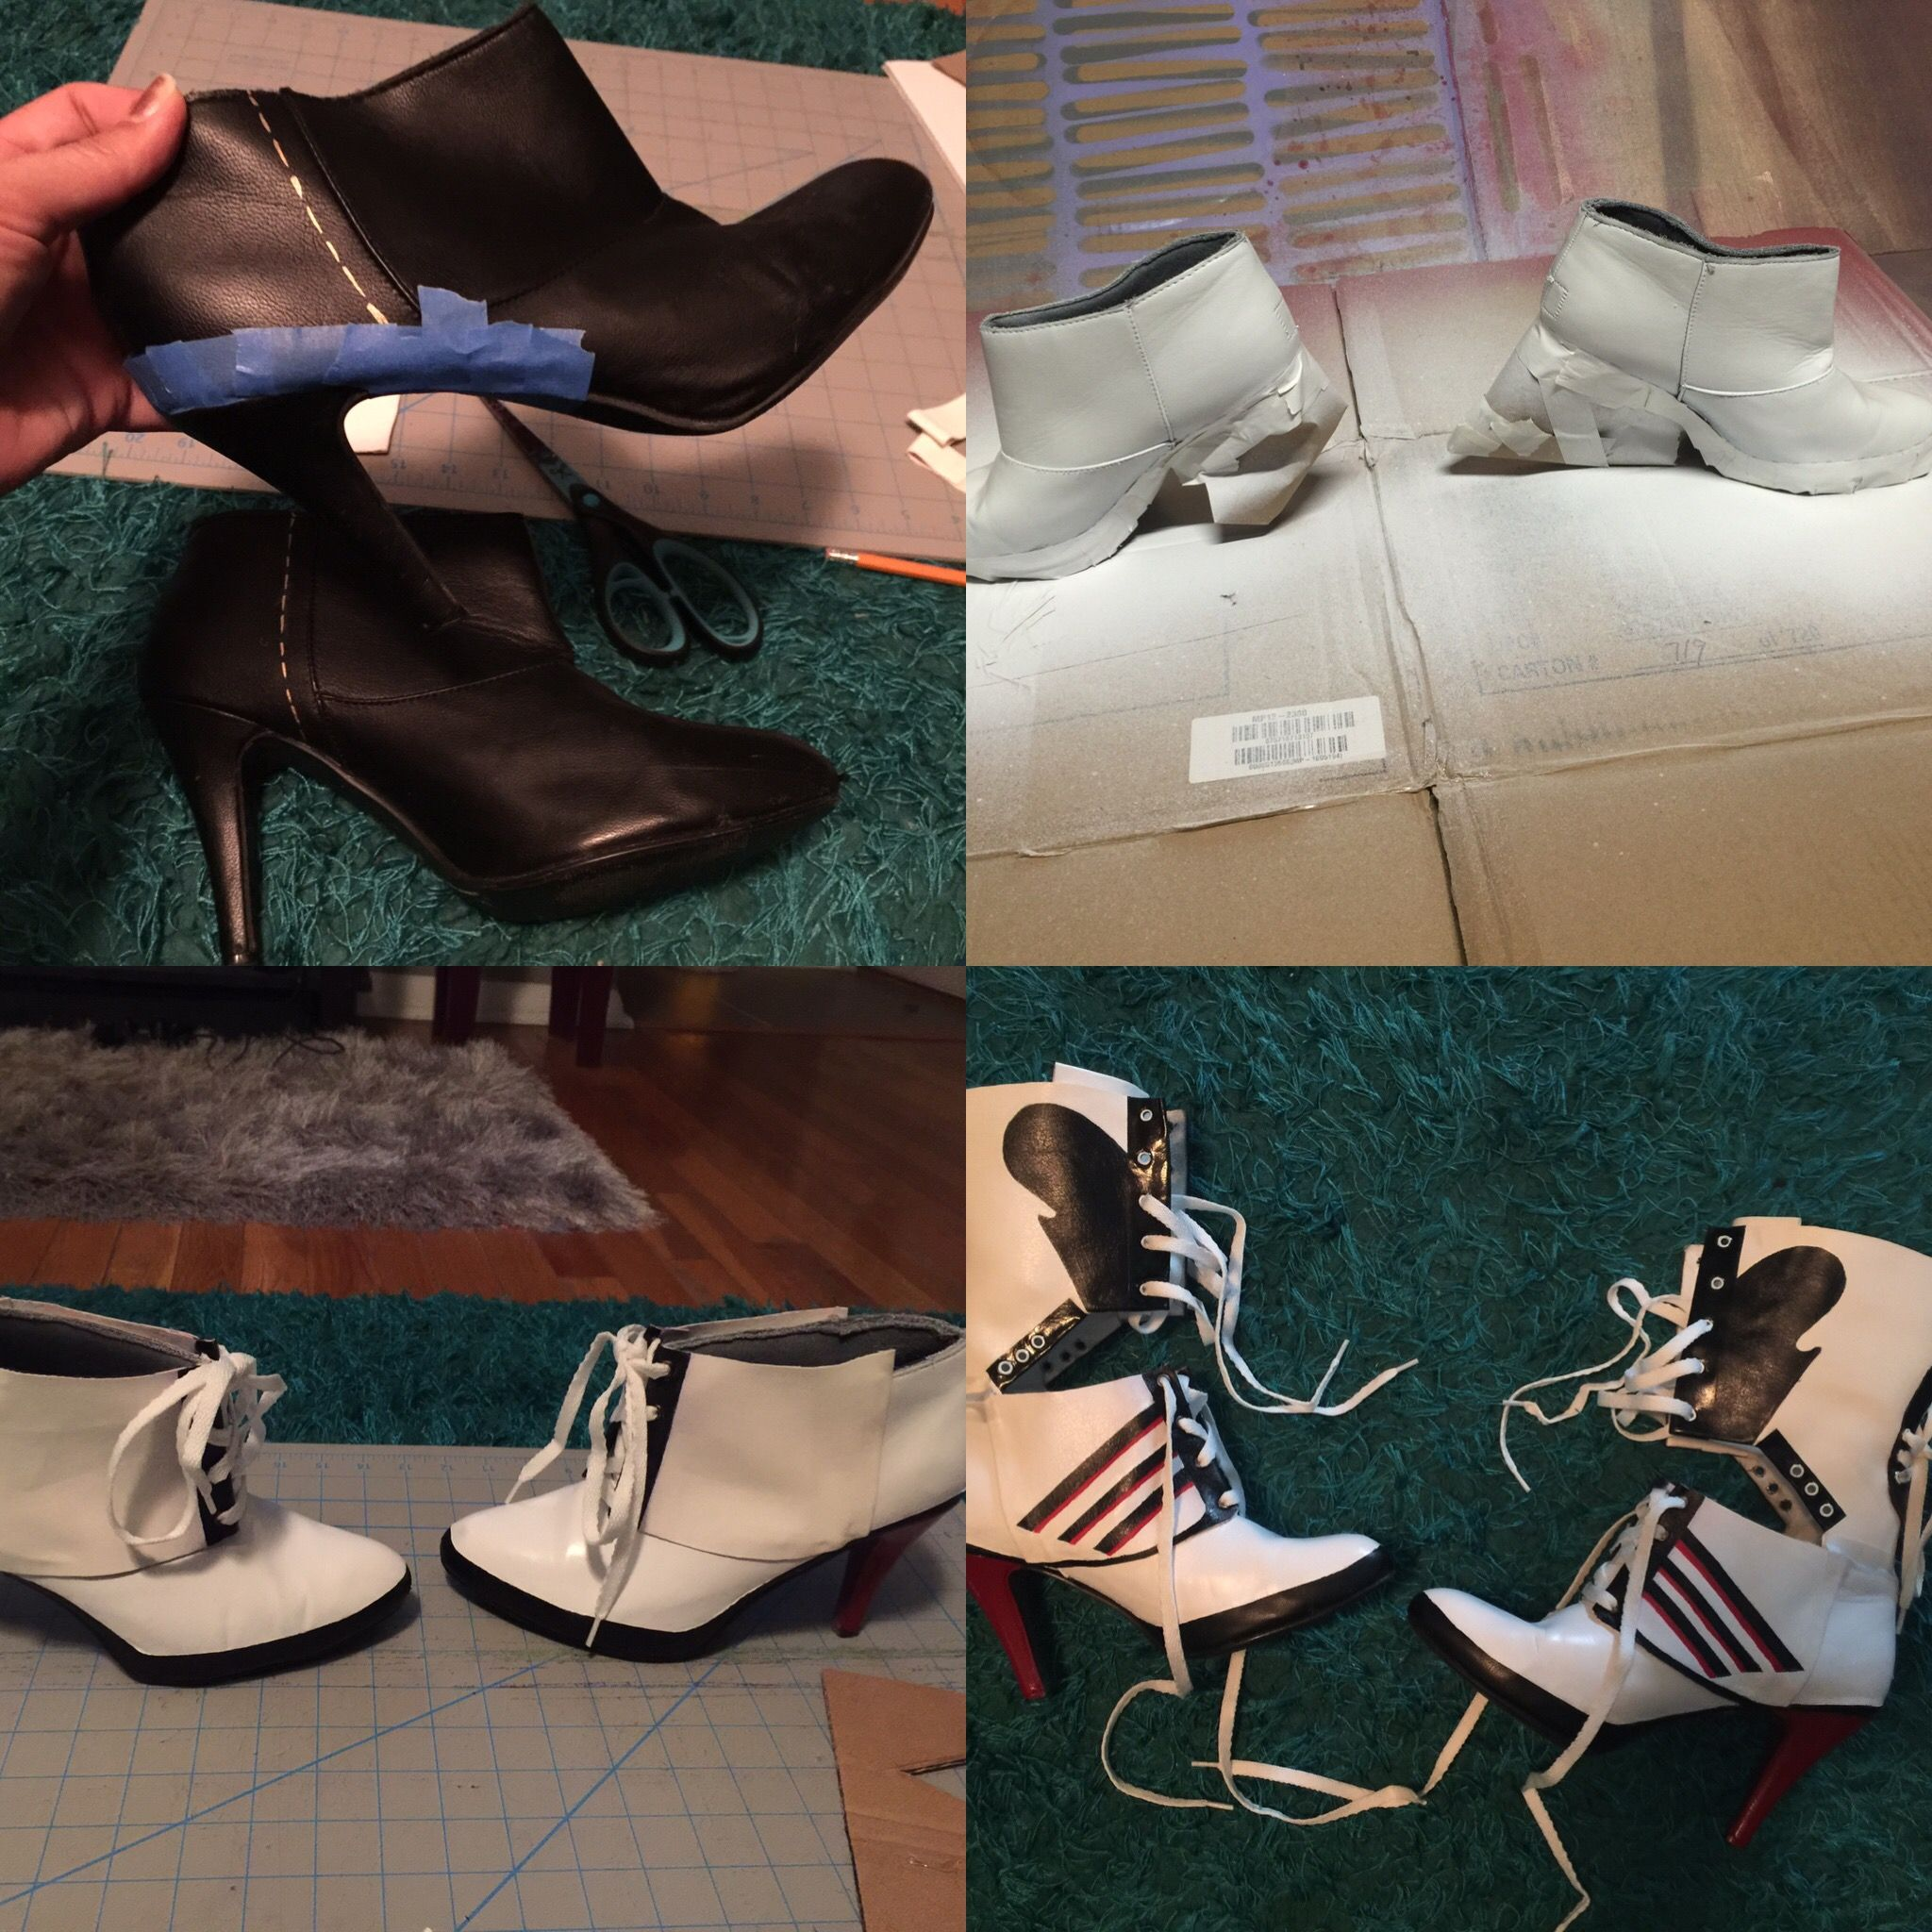 DIY - Harley Quinn boots - High Heeled Adidas - Handmade - Costume/Cosplay